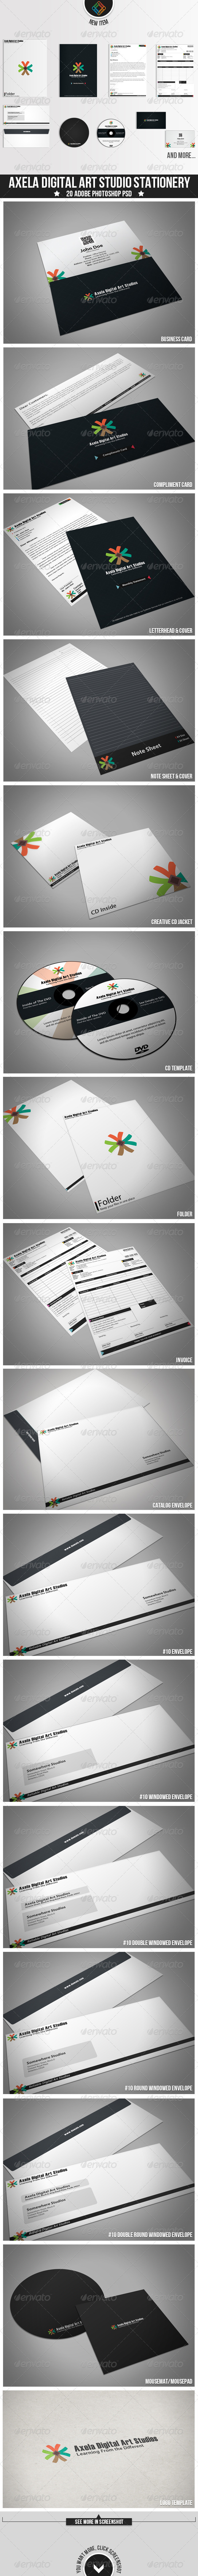 Axela Digital Art Studios Stationery - Stationery Print Templates